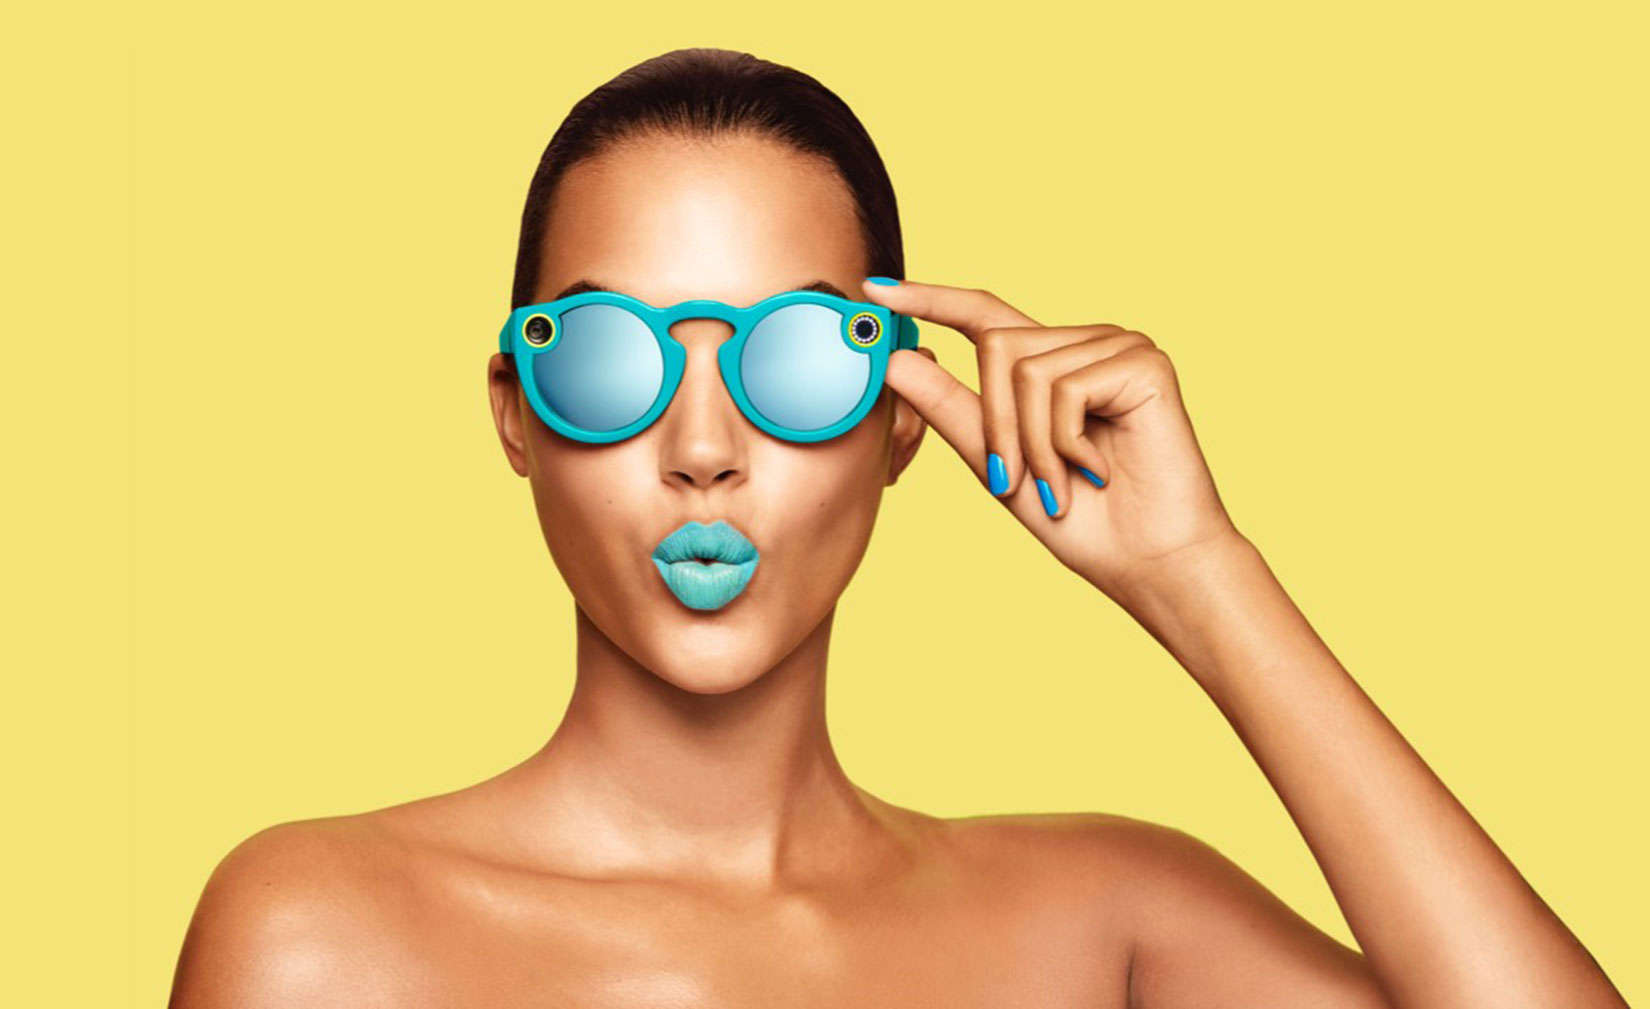 Spectacles are no longer a U.S. exclusive.